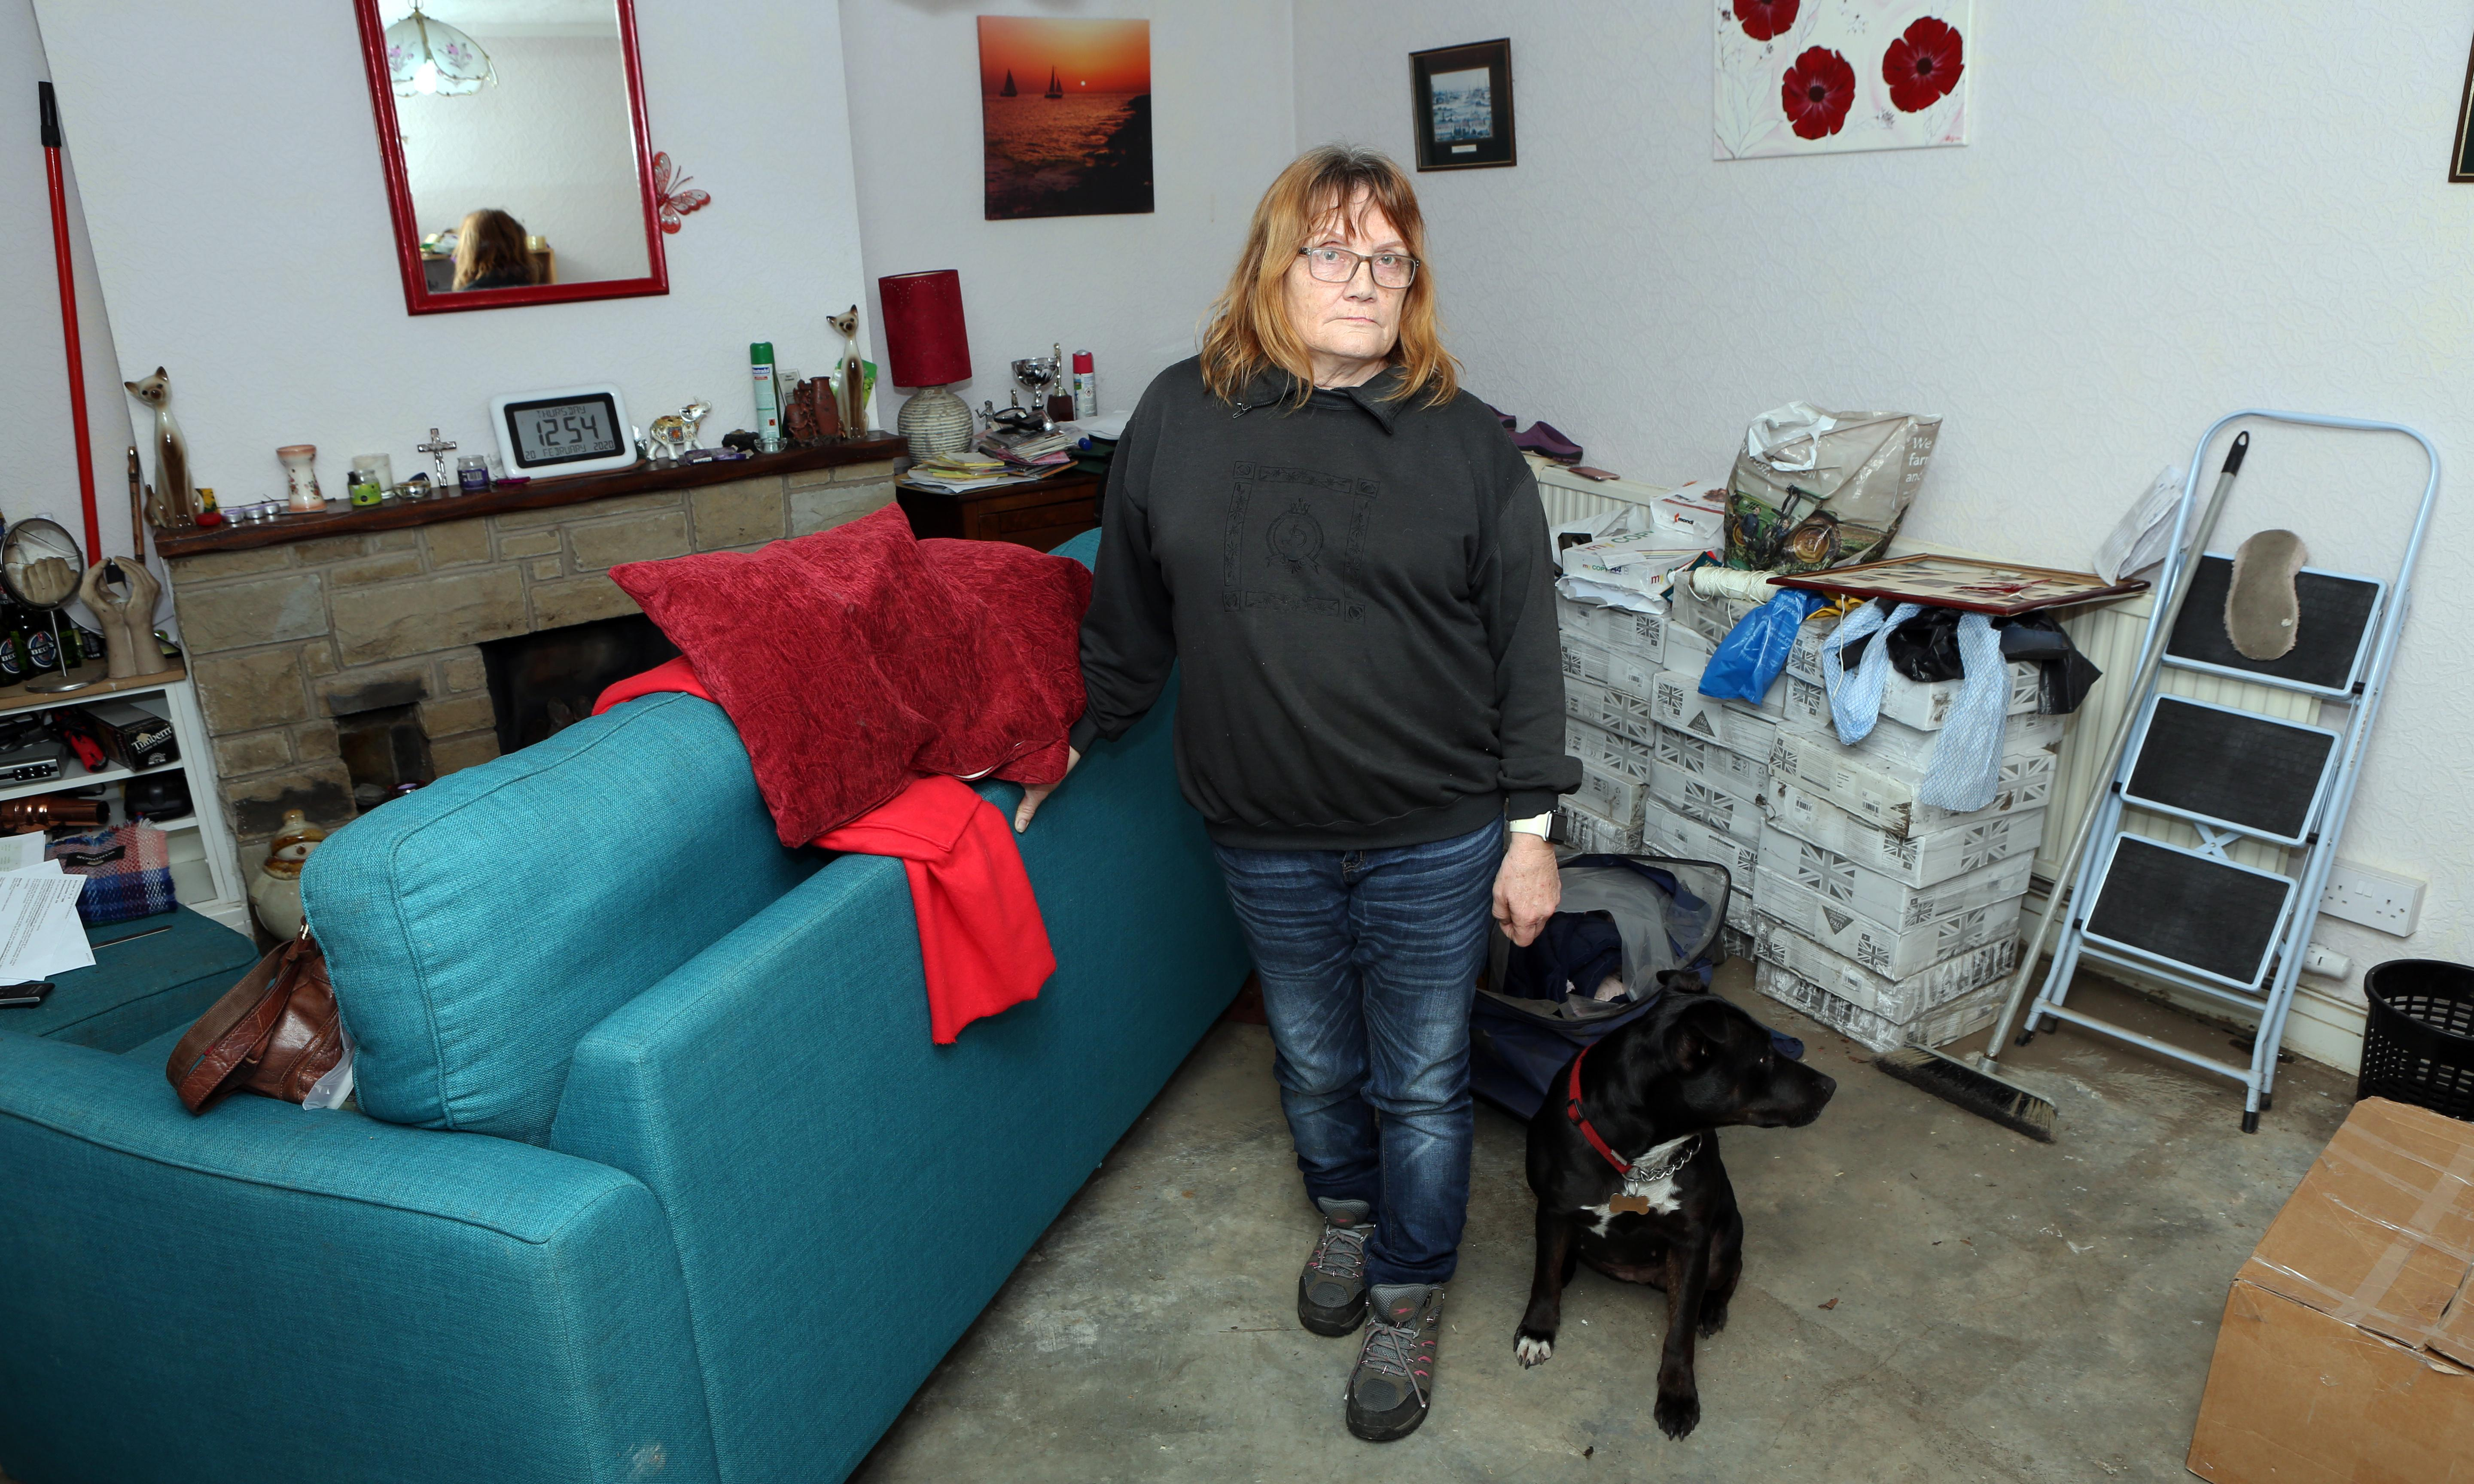 Six floods in five years: life in Yorkshire's Calder valley